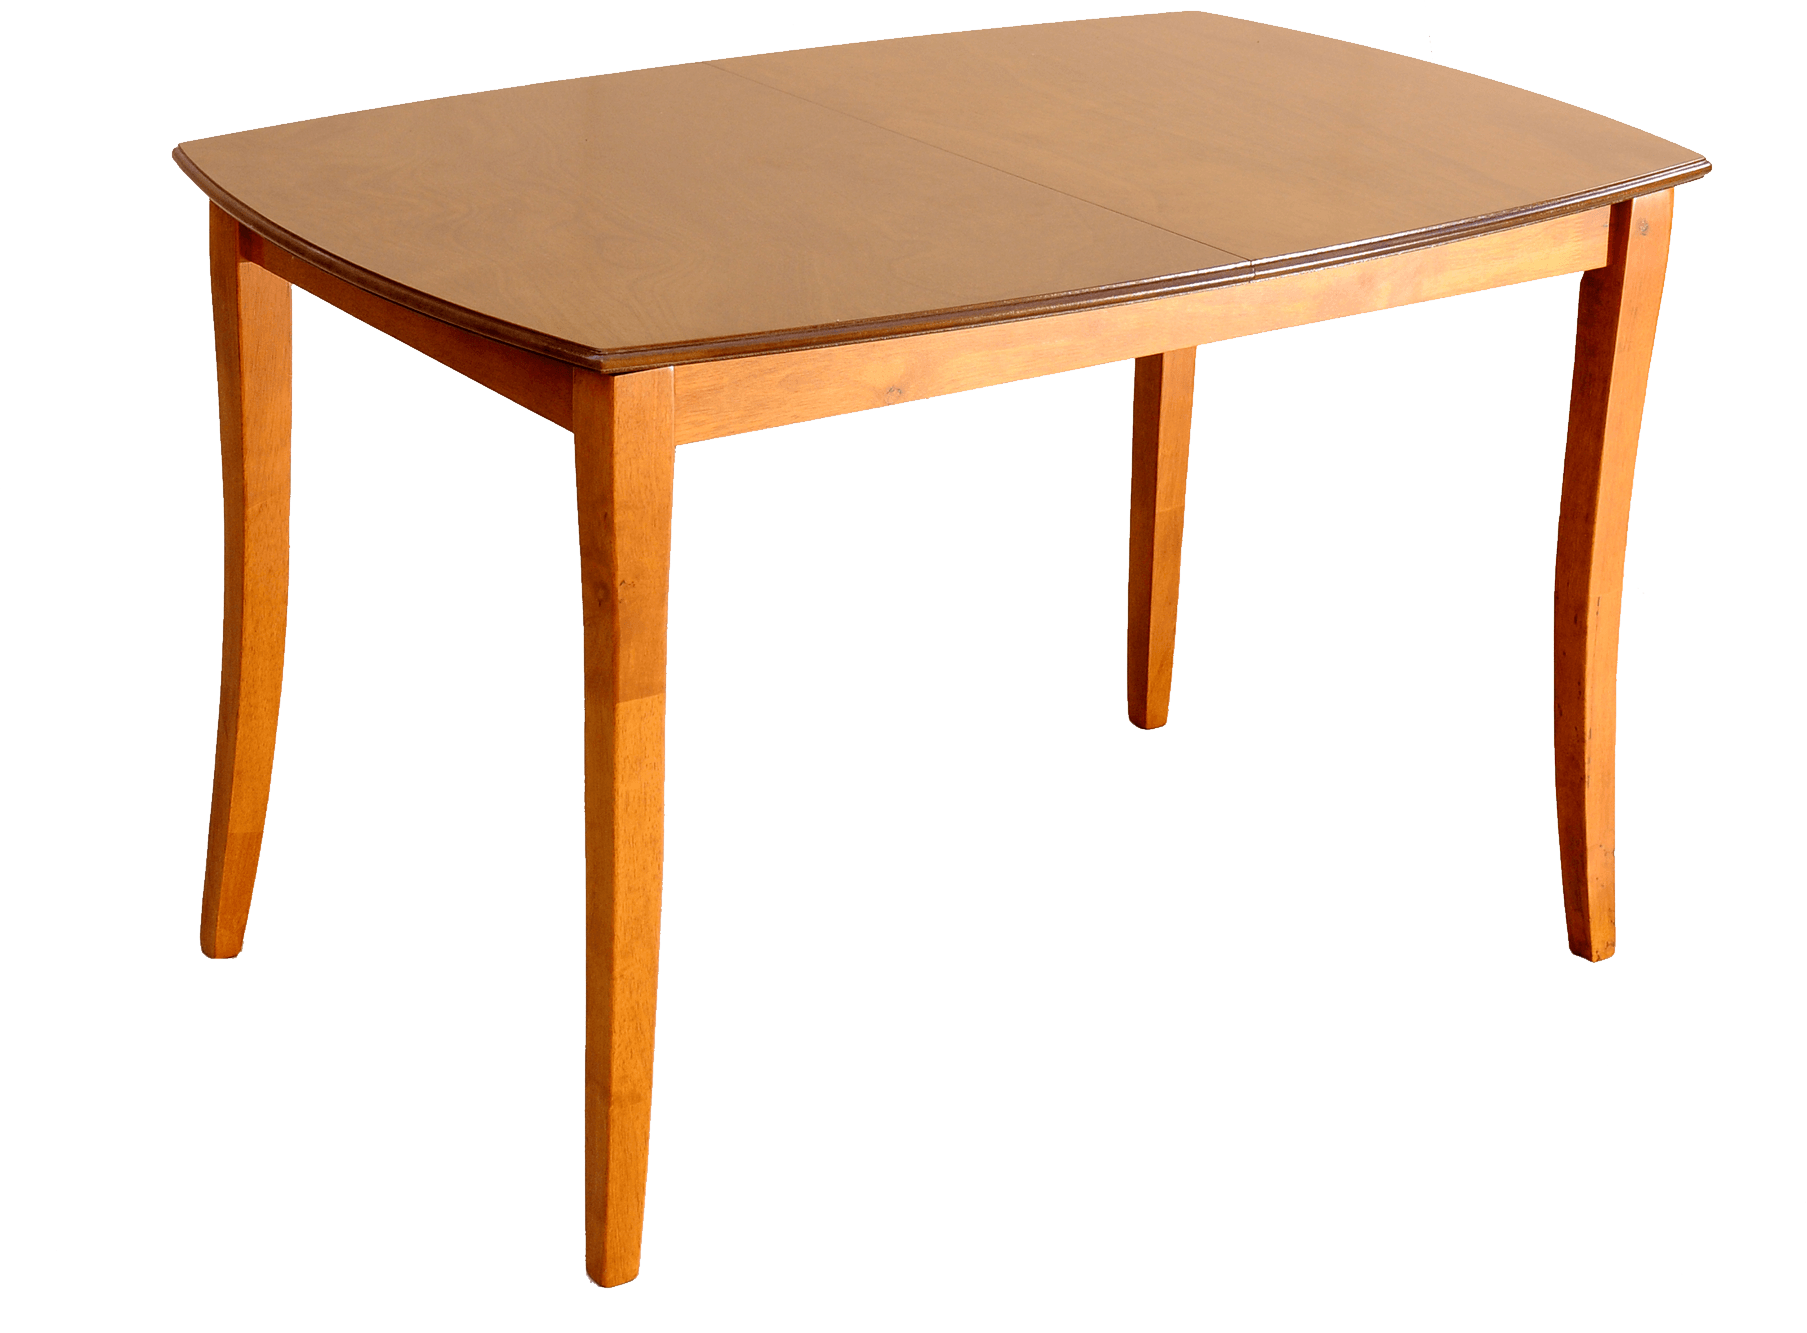 PlusPNG - Table PNG